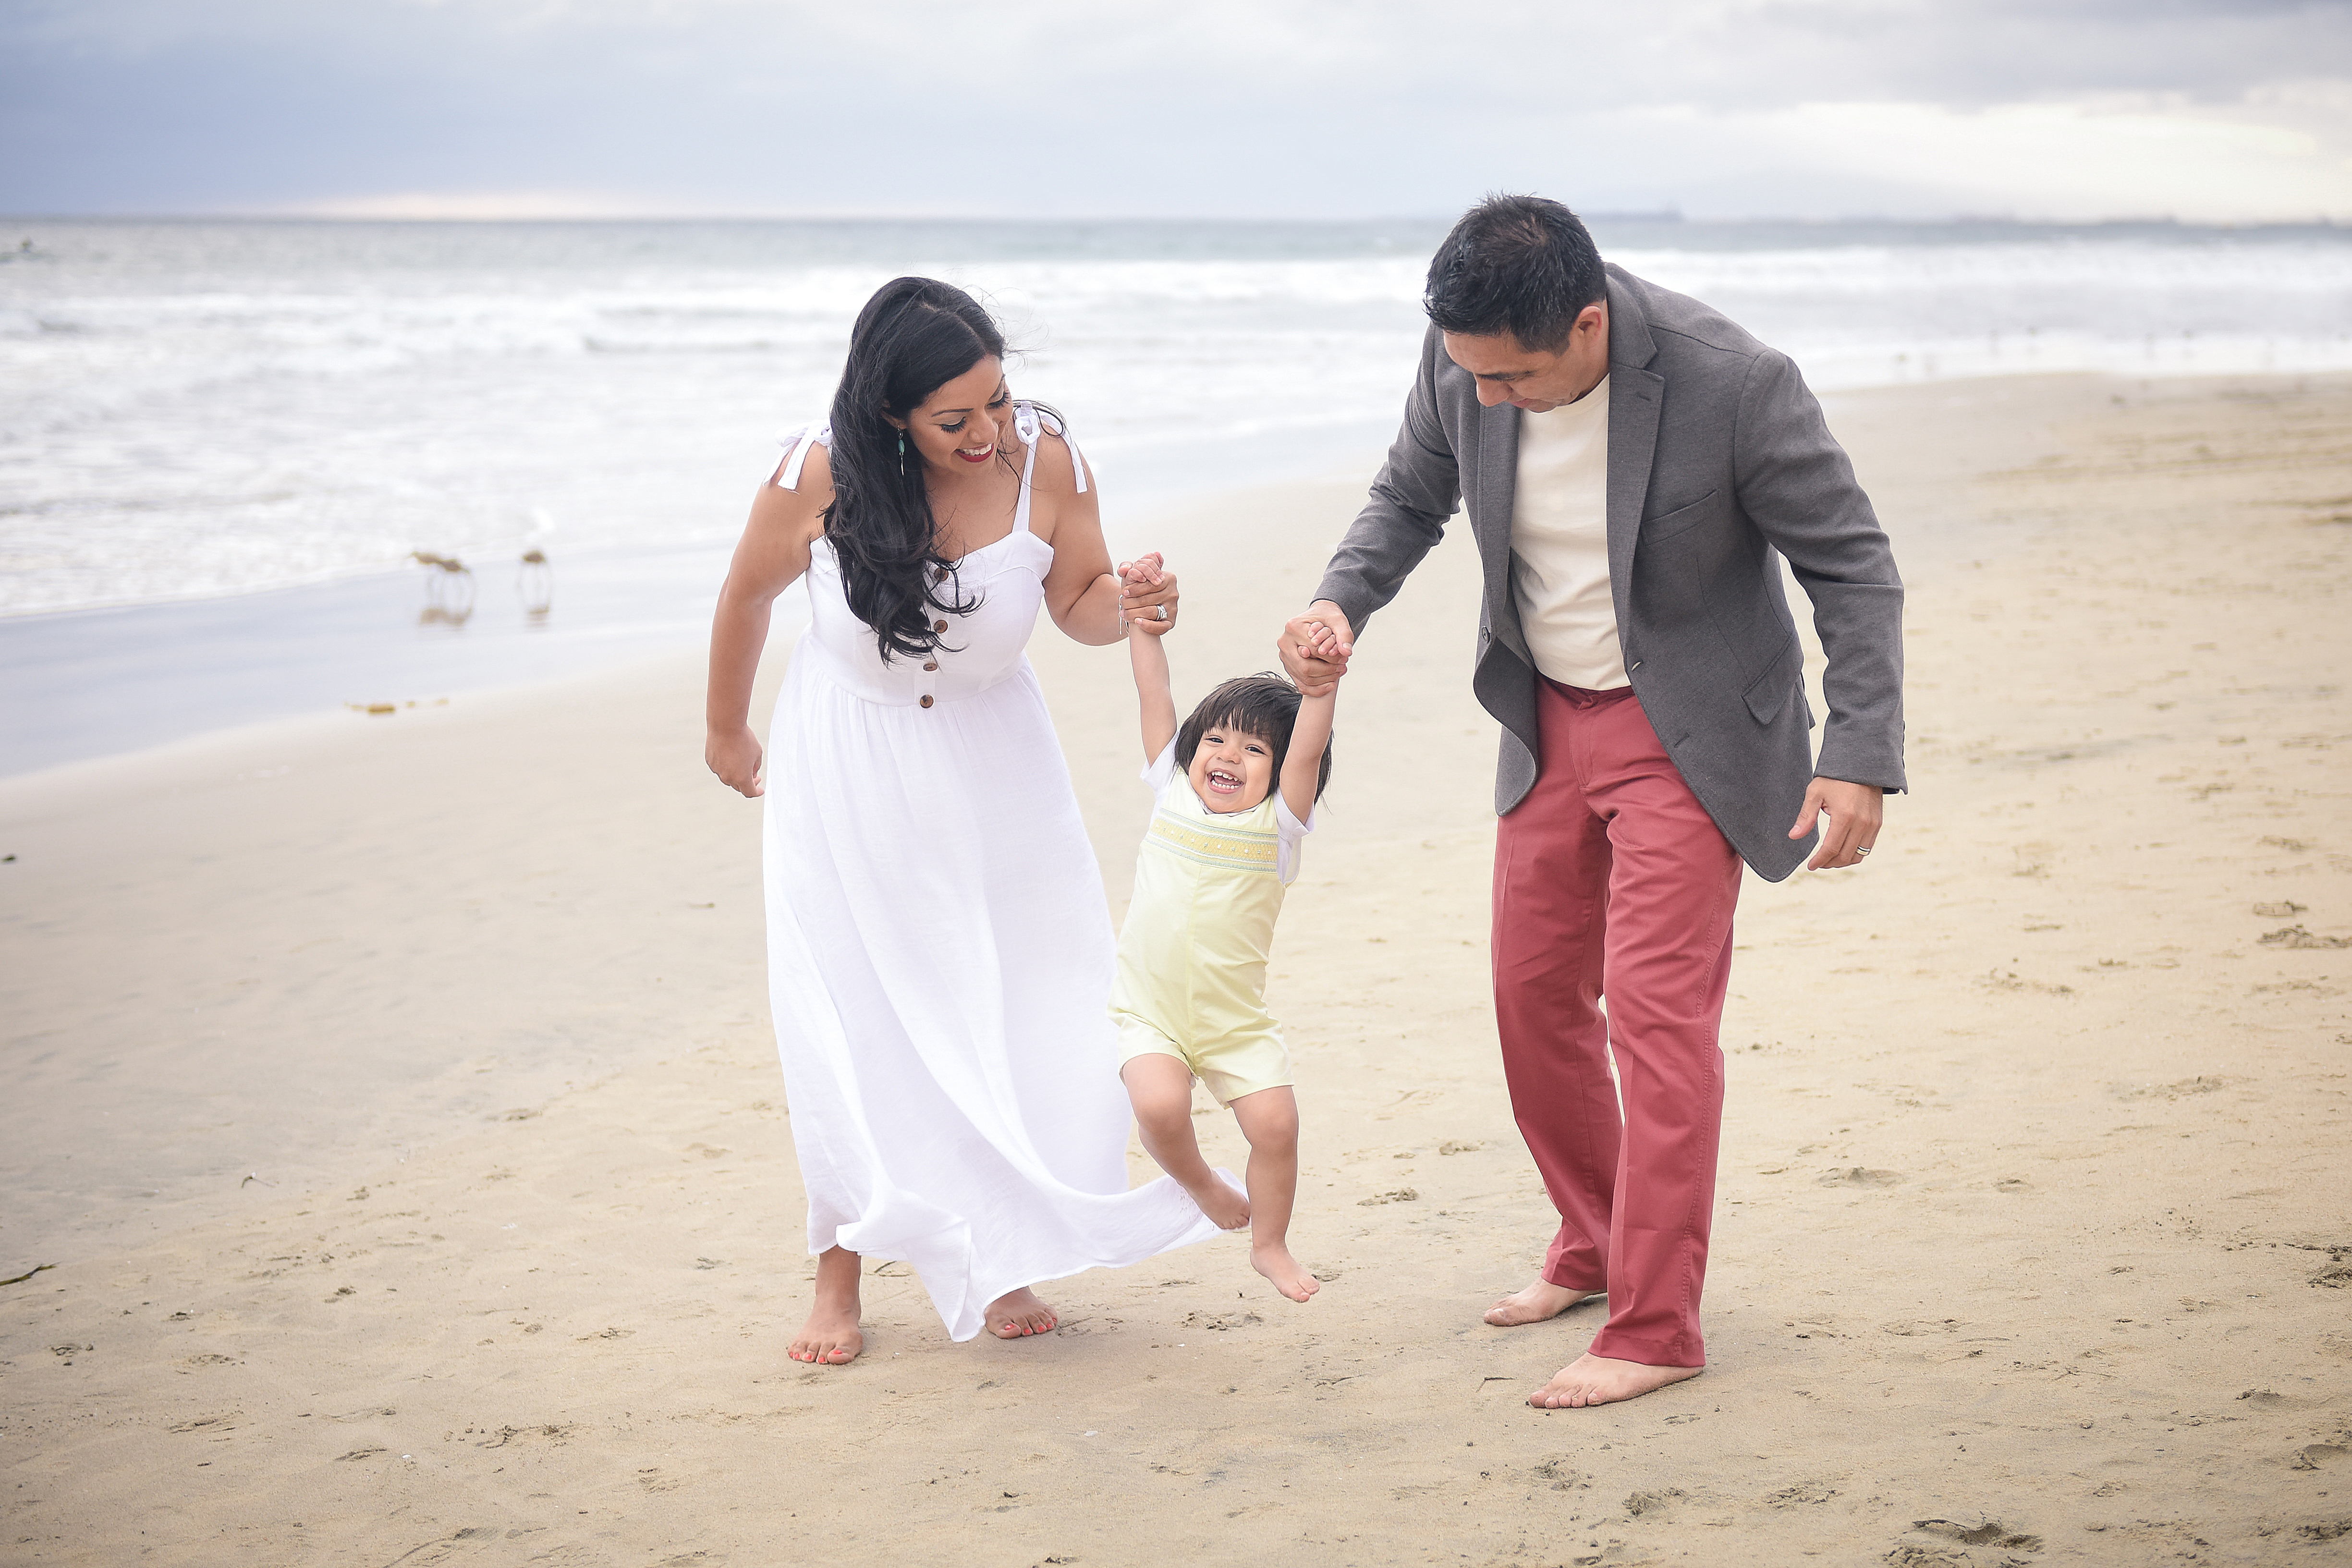 Family beach pictures | poses for a family beach photoshoot | orange county family photographer